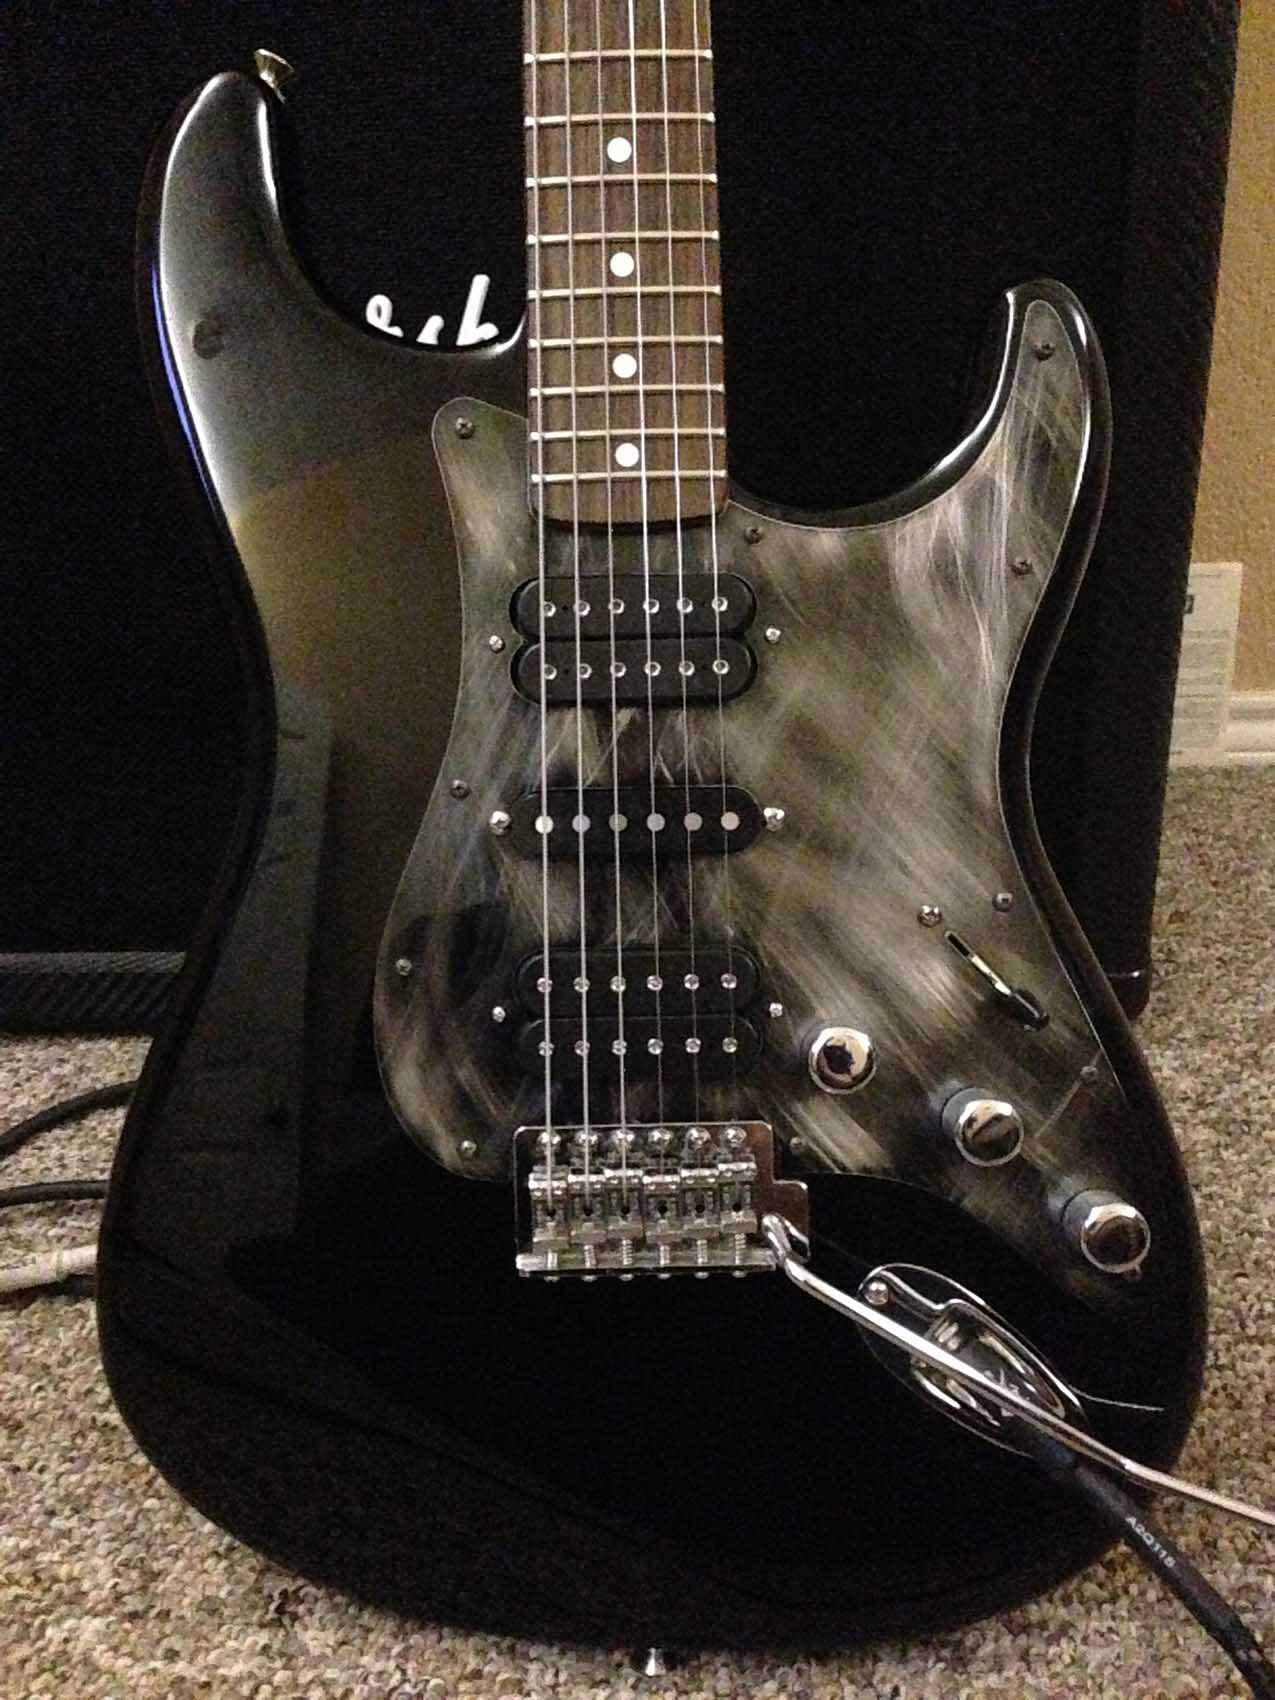 custom hsh black fender stratocaster from lance in texas. Black Bedroom Furniture Sets. Home Design Ideas